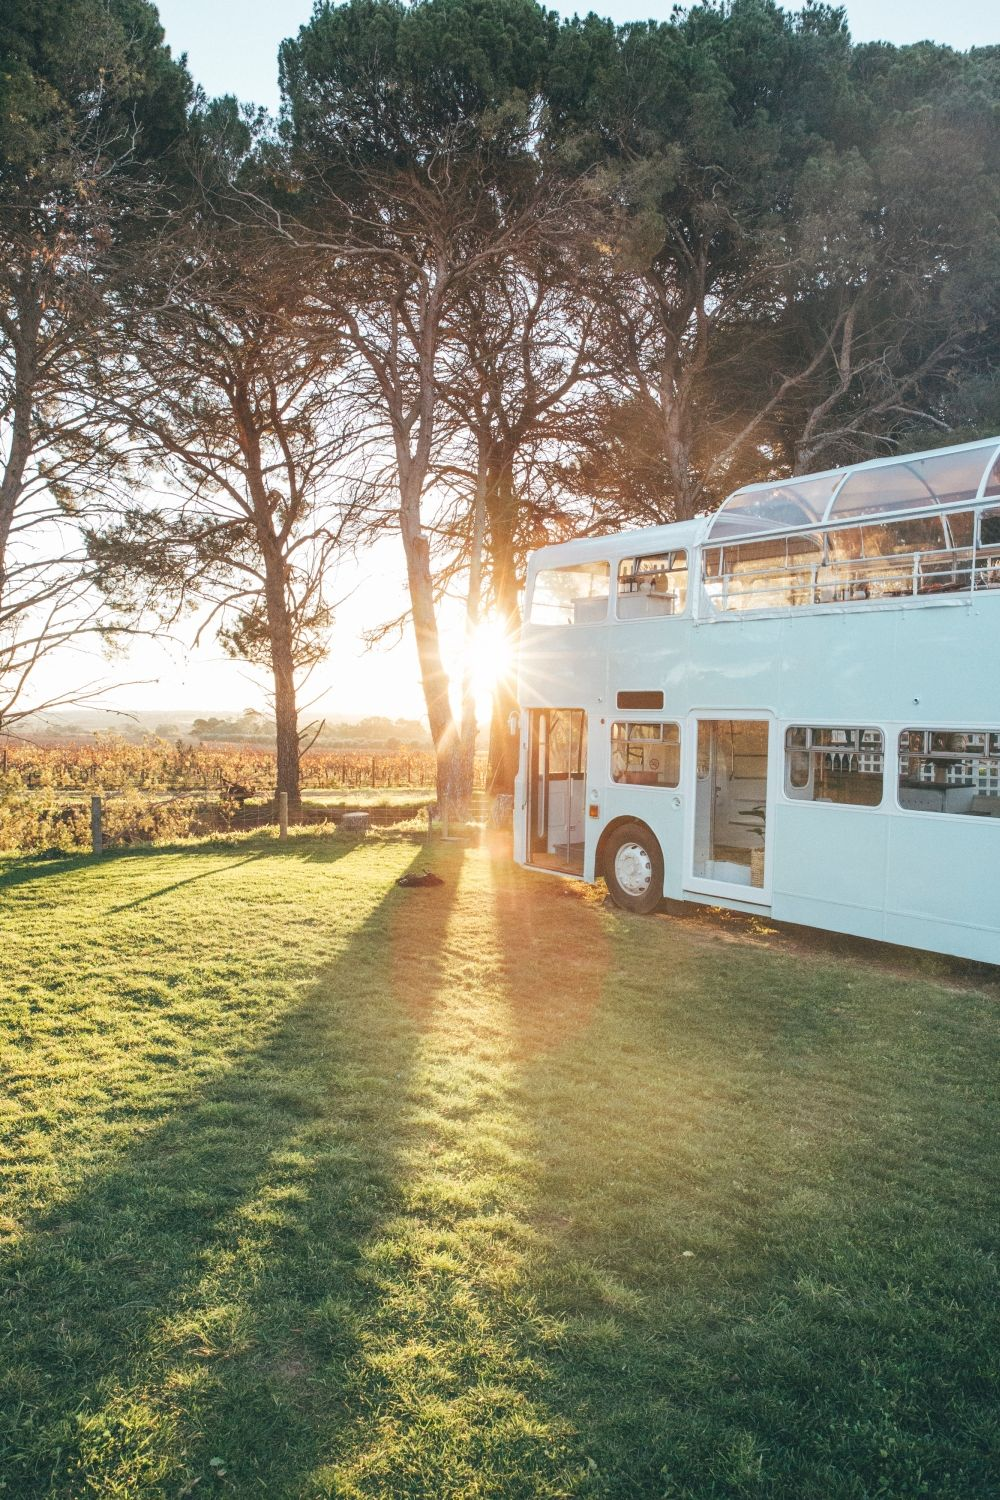 Hop on and dine in a powder blue double-decker bus at the winery. Photo: South Australia Tourism Commission